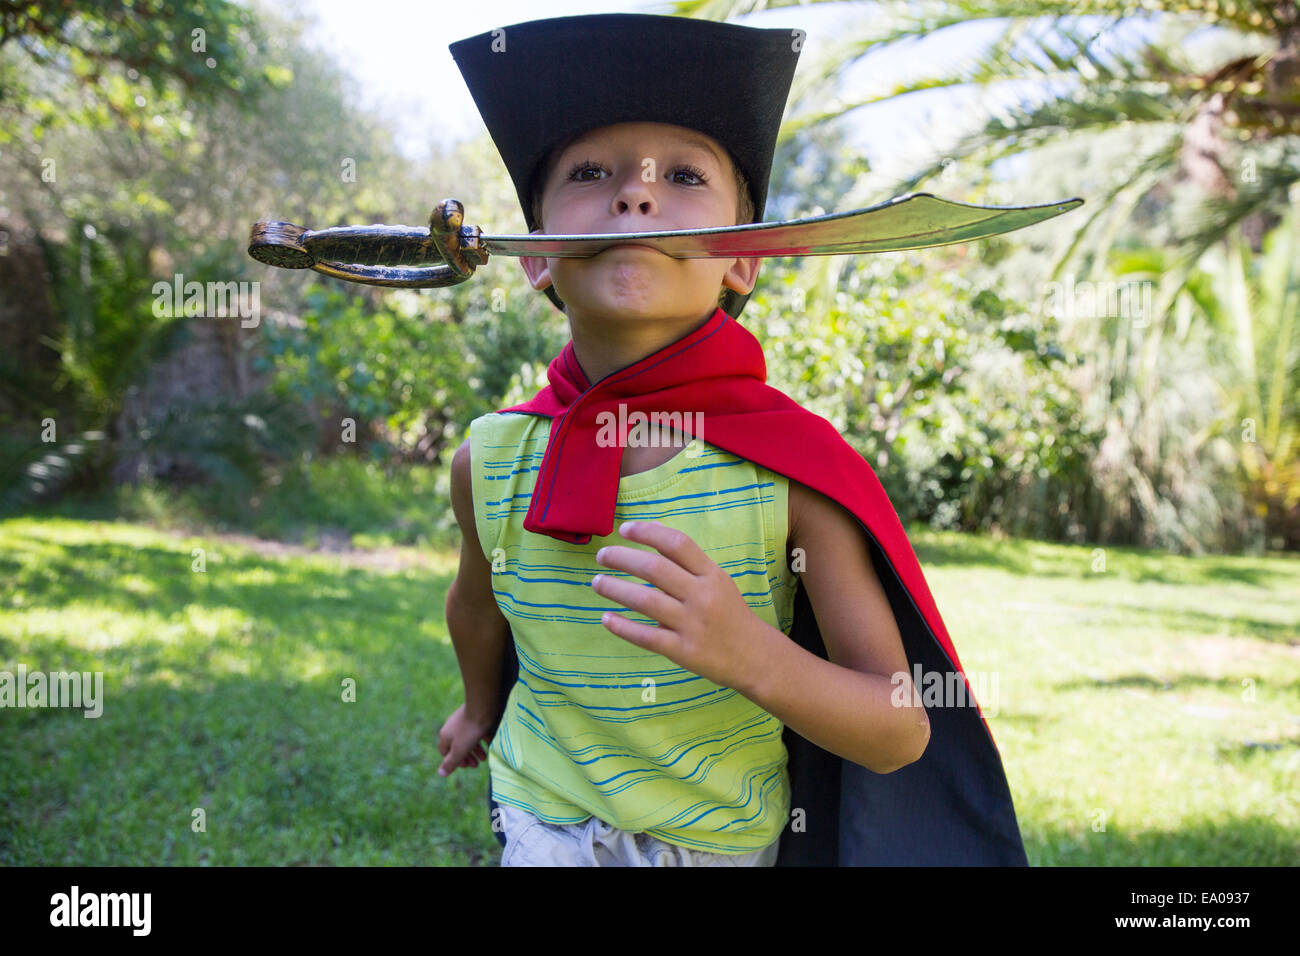 Young boy wearing fancy dress costume, running in park Stock Photo